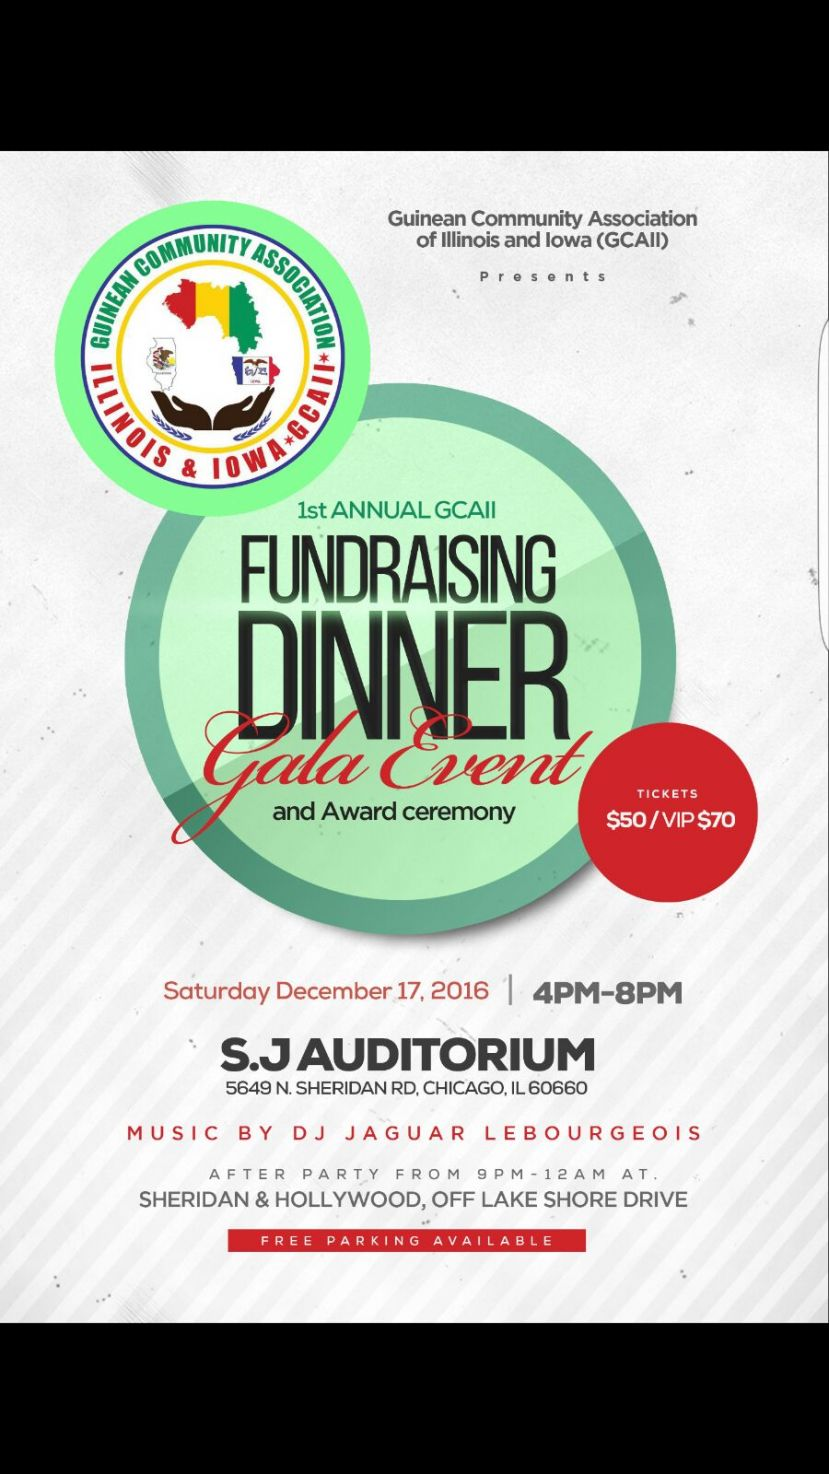 Invitation to our 1st Annual Dinner Gala/Fundraising/Award Ceremony